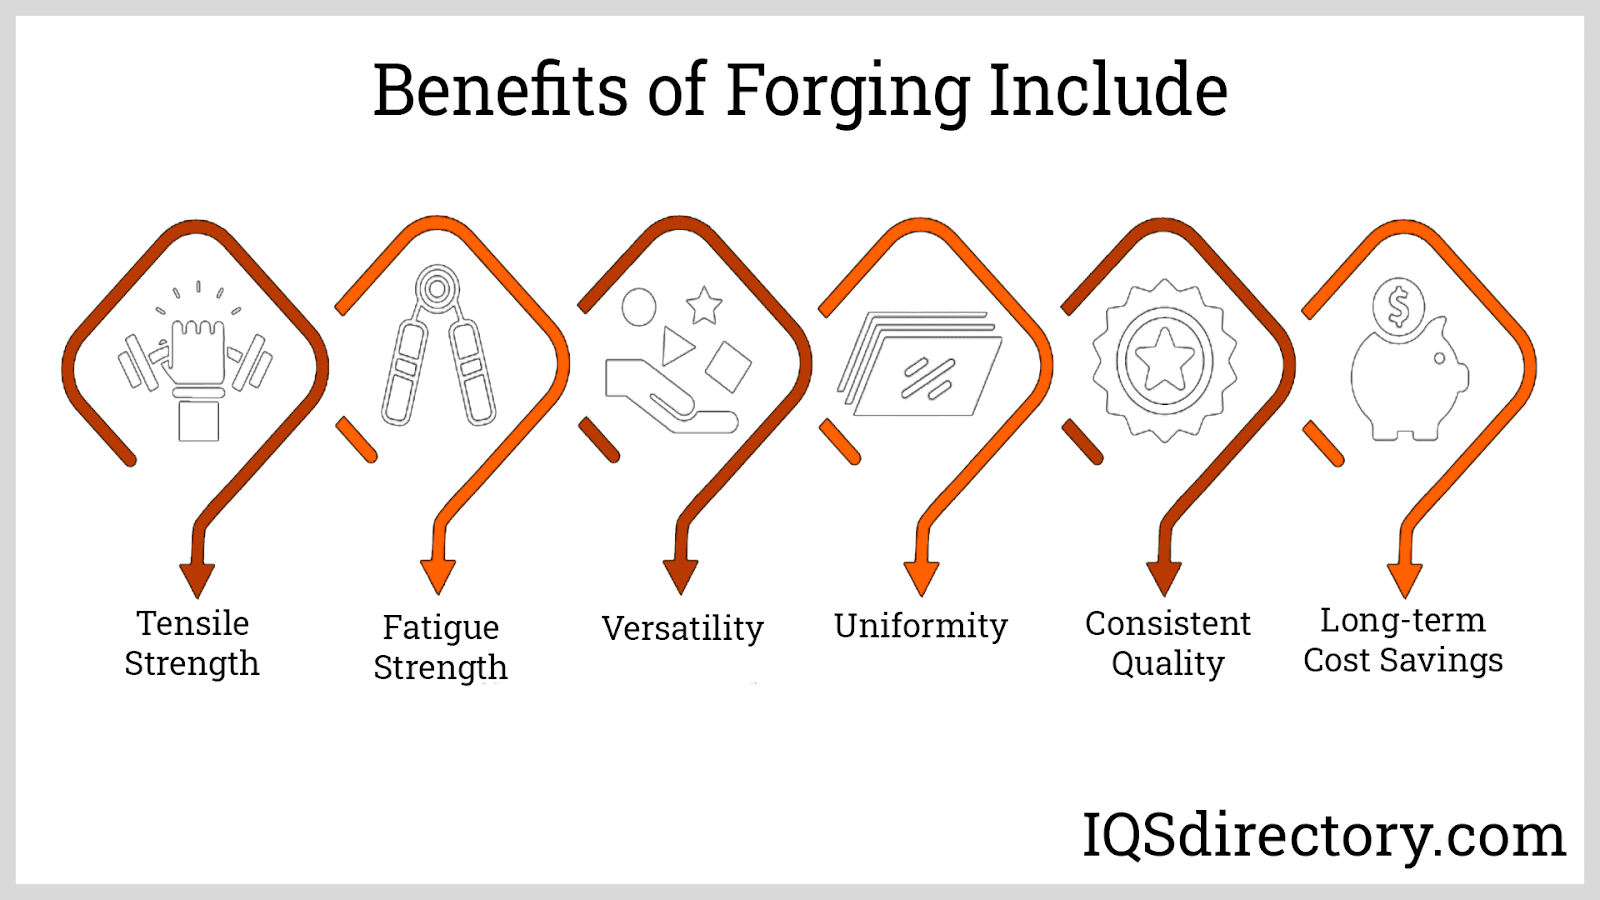 Benefits of Forging Include